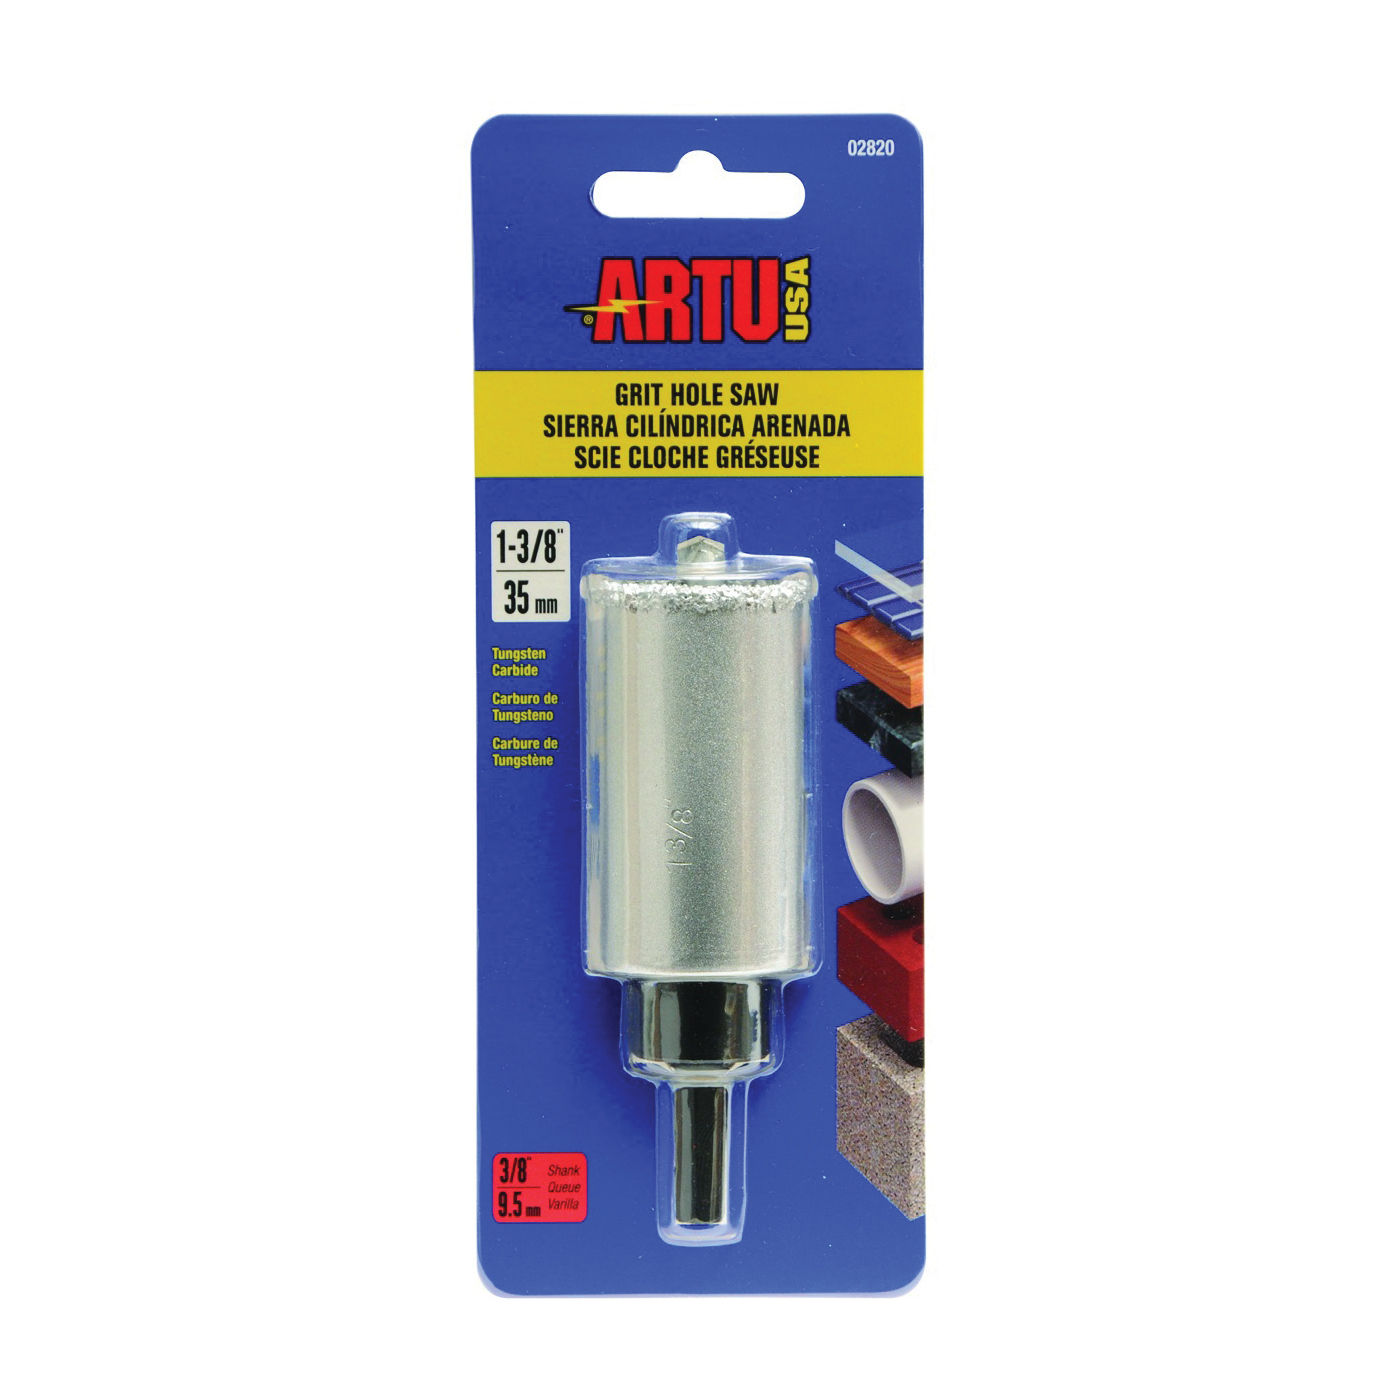 Picture of ARTU 02820 Hole Saw, 1-3/8 in Dia, 2-1/4 in D Cutting, 5/8-18 Arbor, Tungsten Carbide Cutting Edge